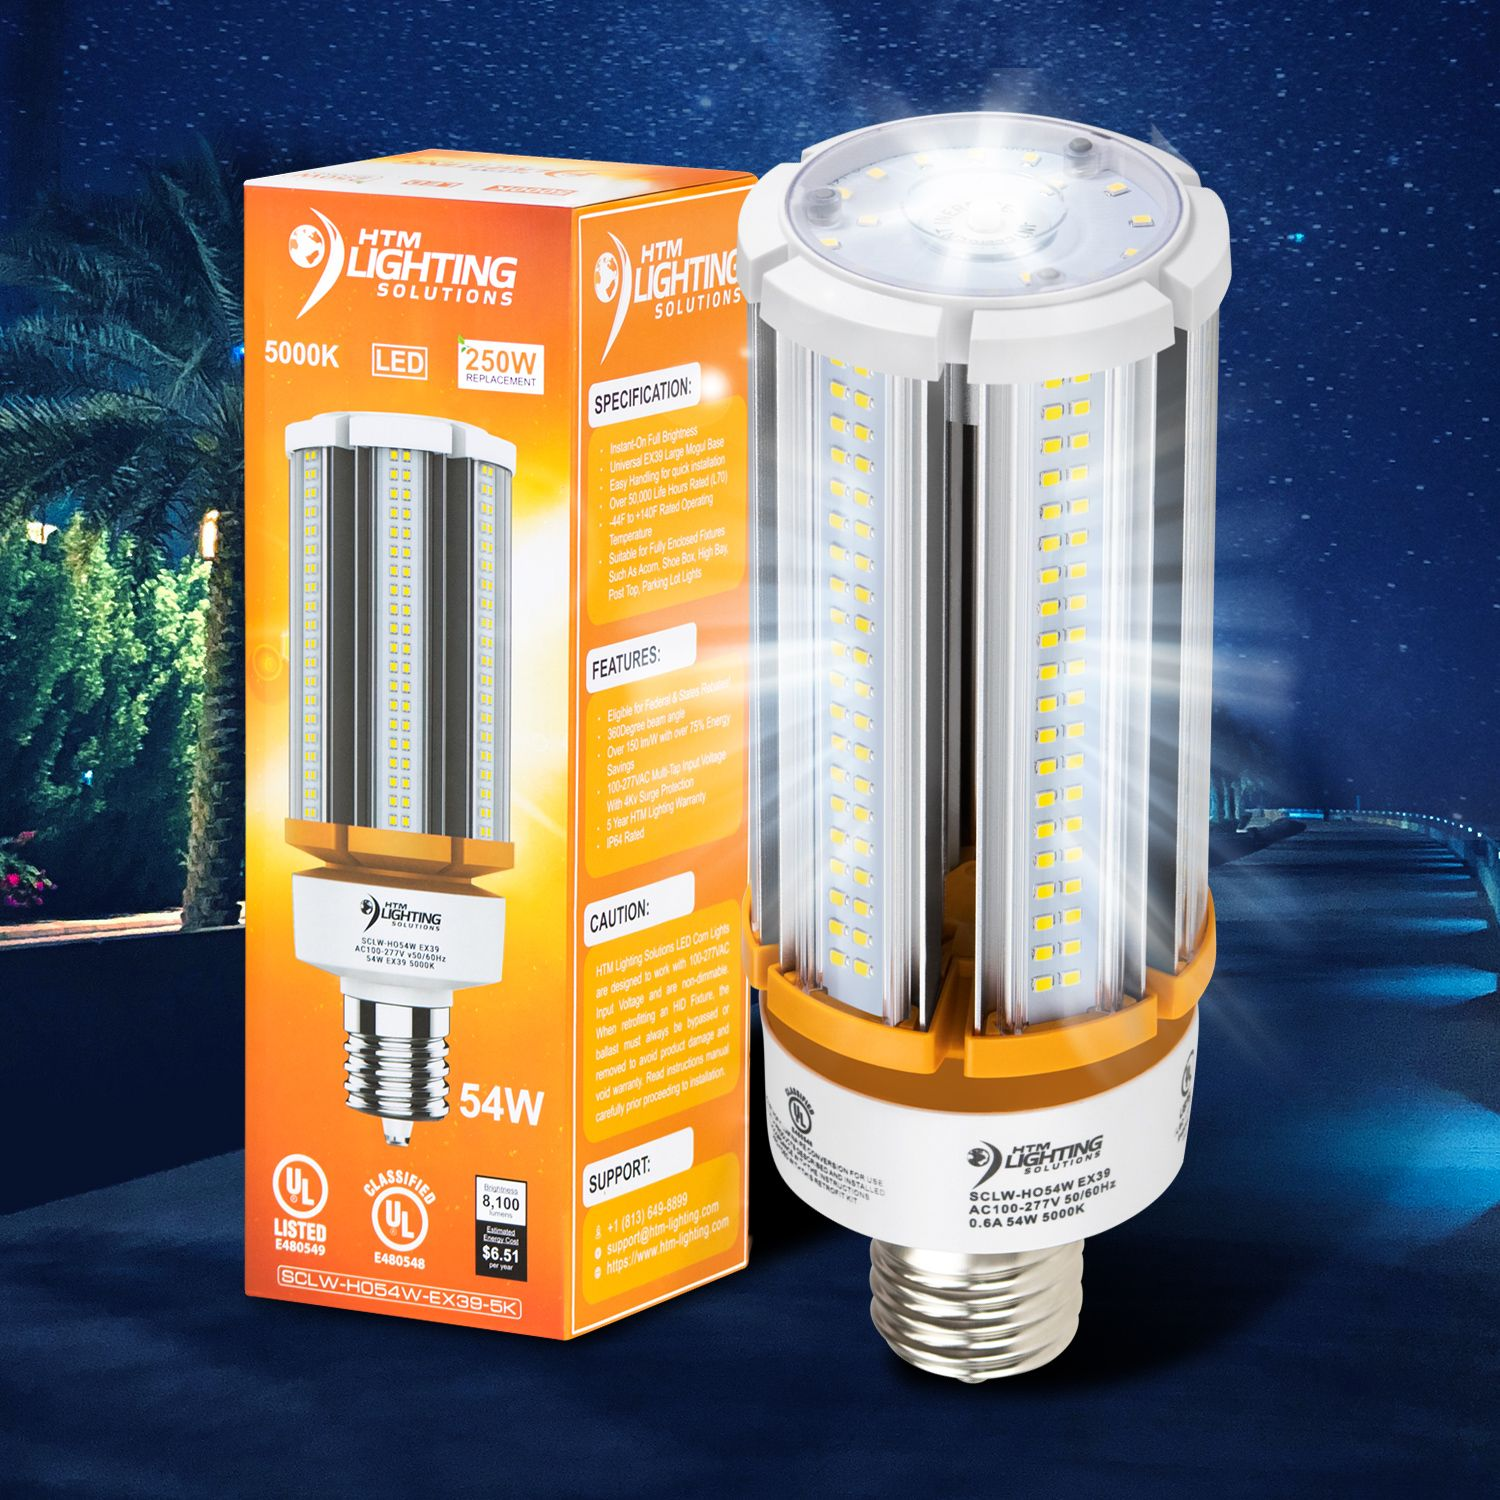 54w Led Corn Light Bulb 250w 300w Metal Halide Equal 8 100 Lumen 150lm W Ex39 Mogul Base Led Bulb Security Lights